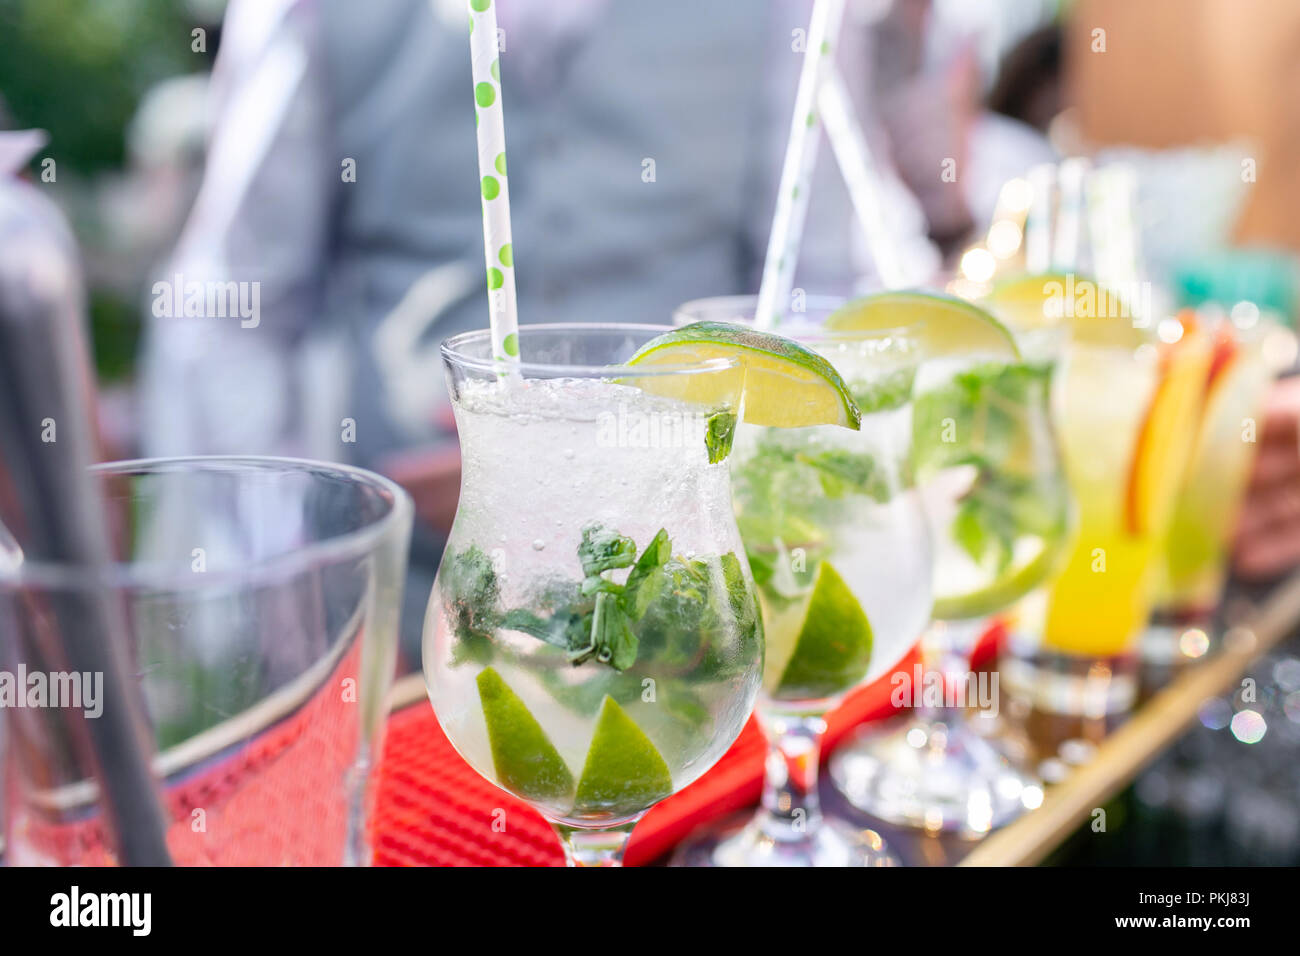 Bartender makes cocktail mojito. Misted glass, selective focus. Alcoholic beverage based on bar counter with ice cubes and lyme. outdoor party - Stock Image